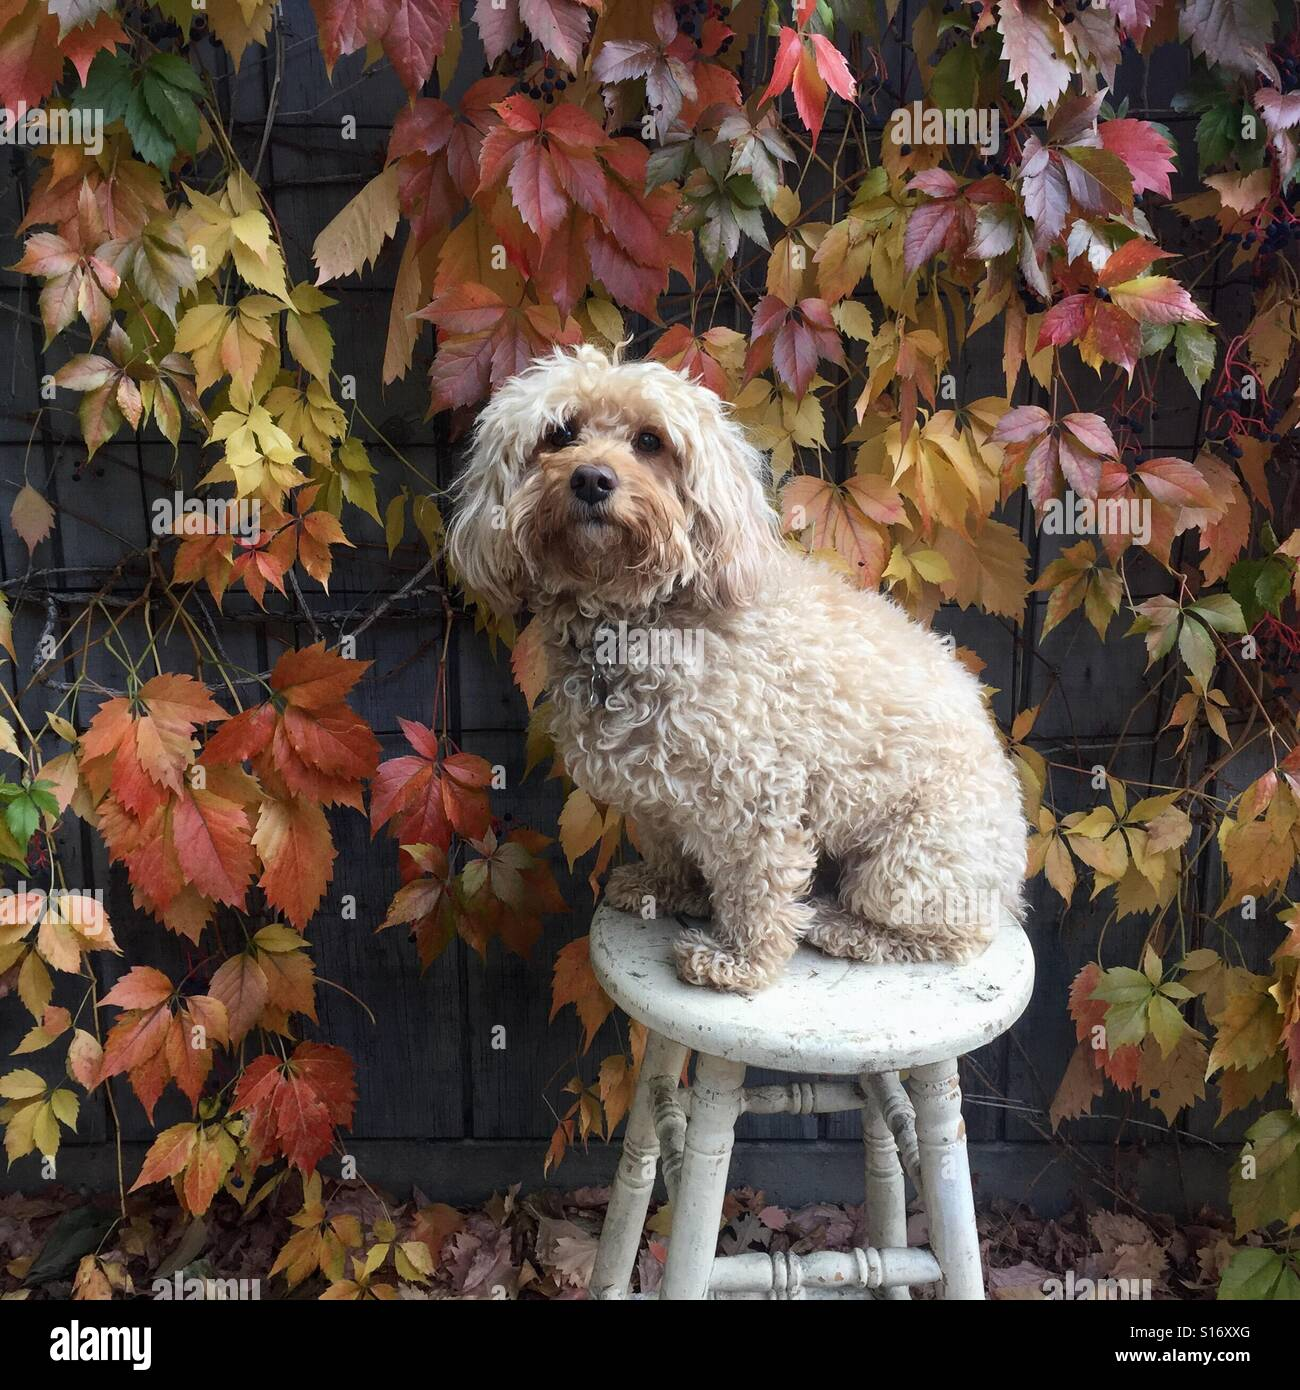 A goldendoodle puppy sits in front of a wall covered and colorful leaves. - Stock Image